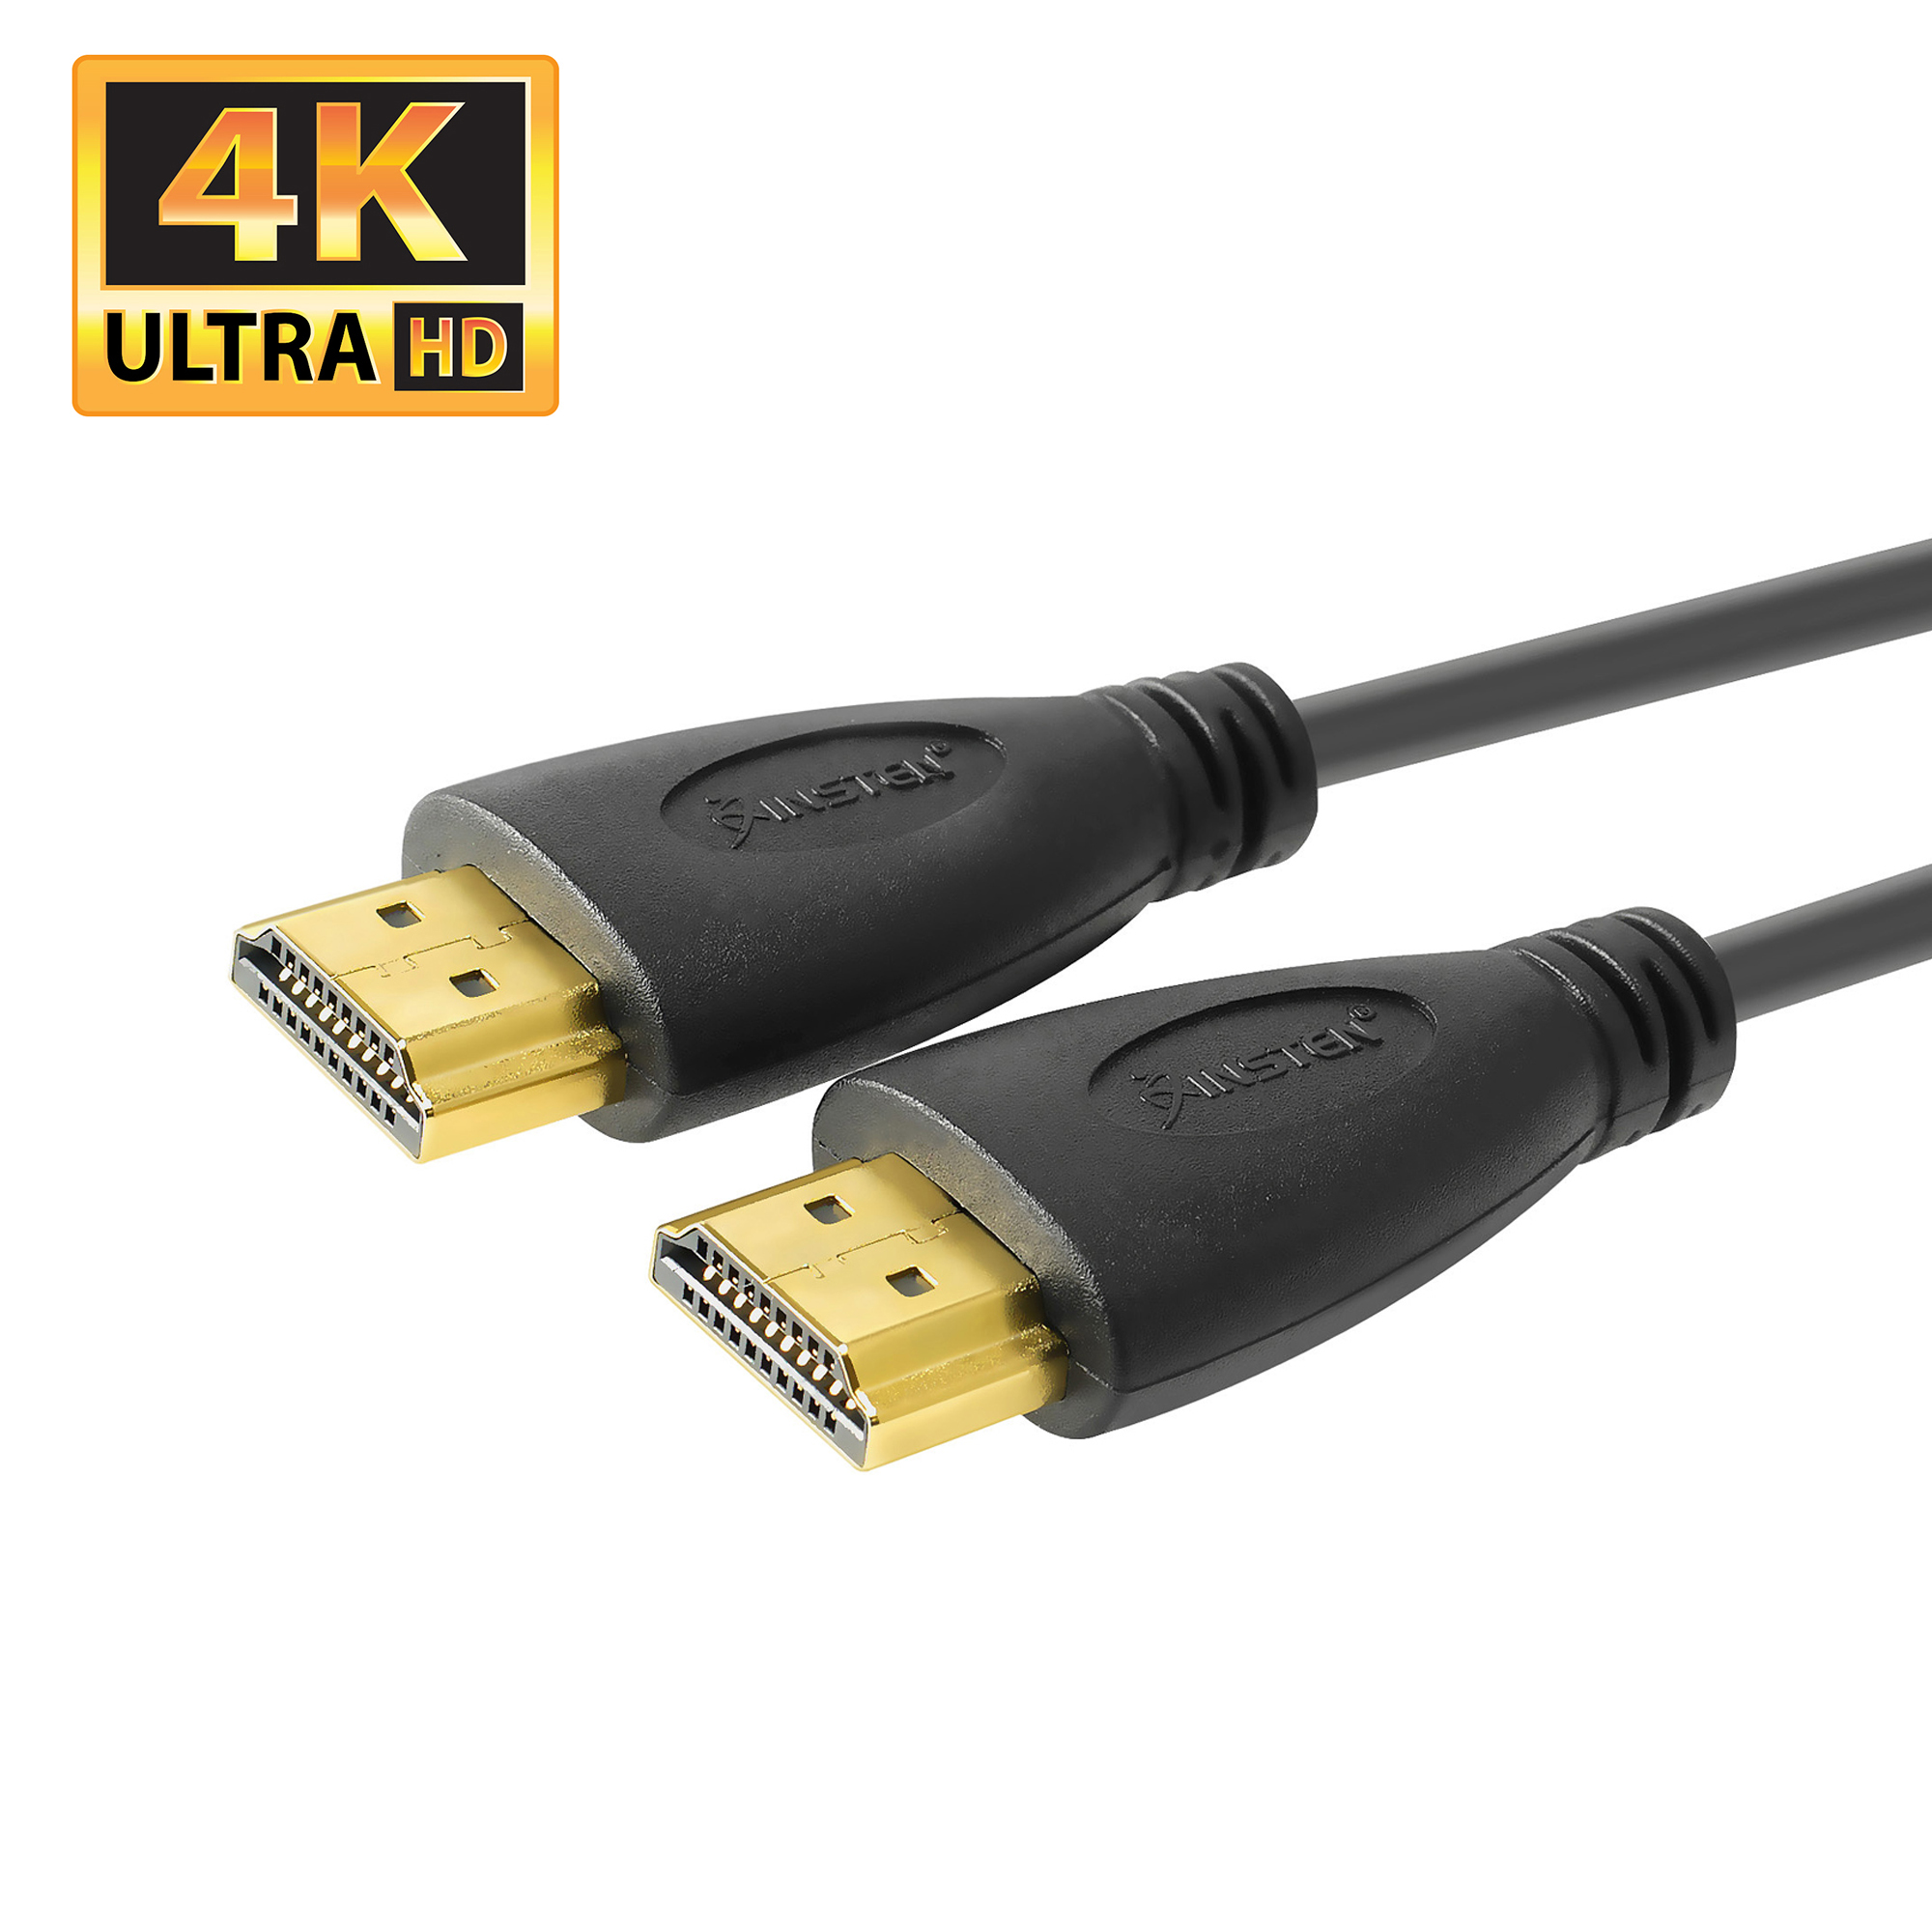 Insten 15' 4K HDMI Cable HDMI Cable for TV Gold Plated High Speed HDMI Cable (version 1.4) [Supports UHD 4K 2160p , Full HD 1080p , 3D , Multi View Video , Ethernet , Audio Return & Smart TV]